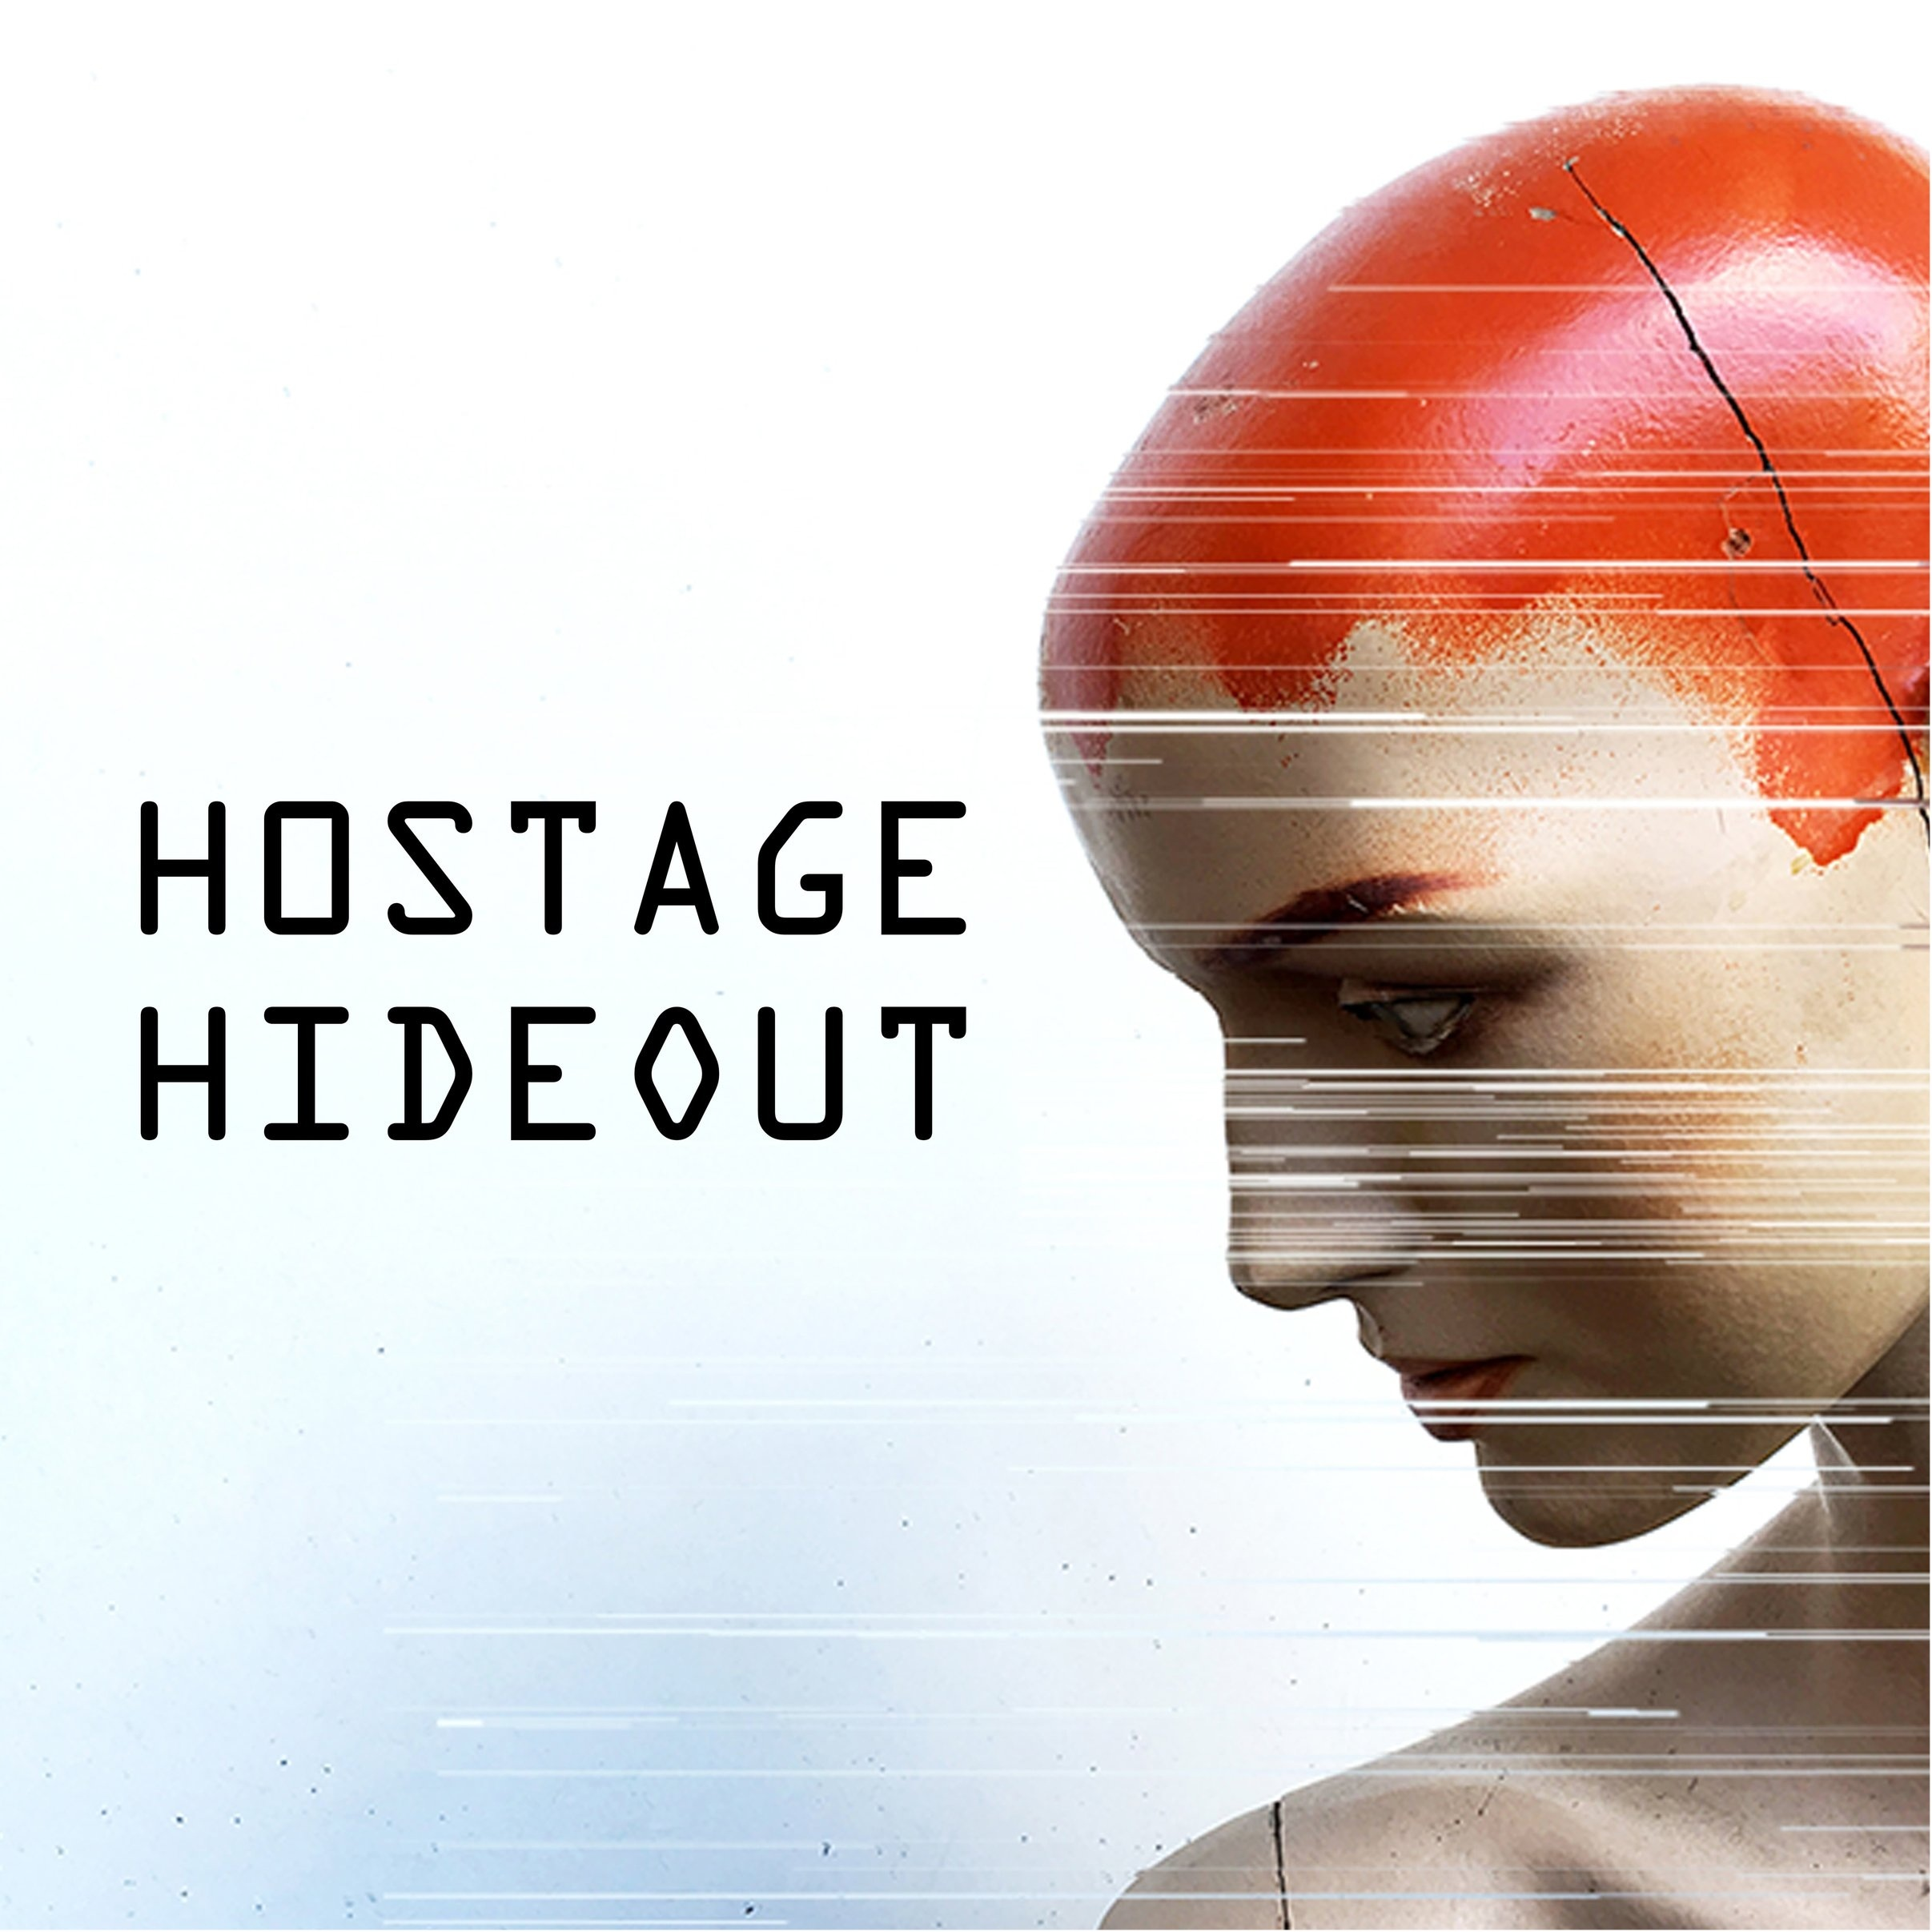 Square+Hostage-min.jpg